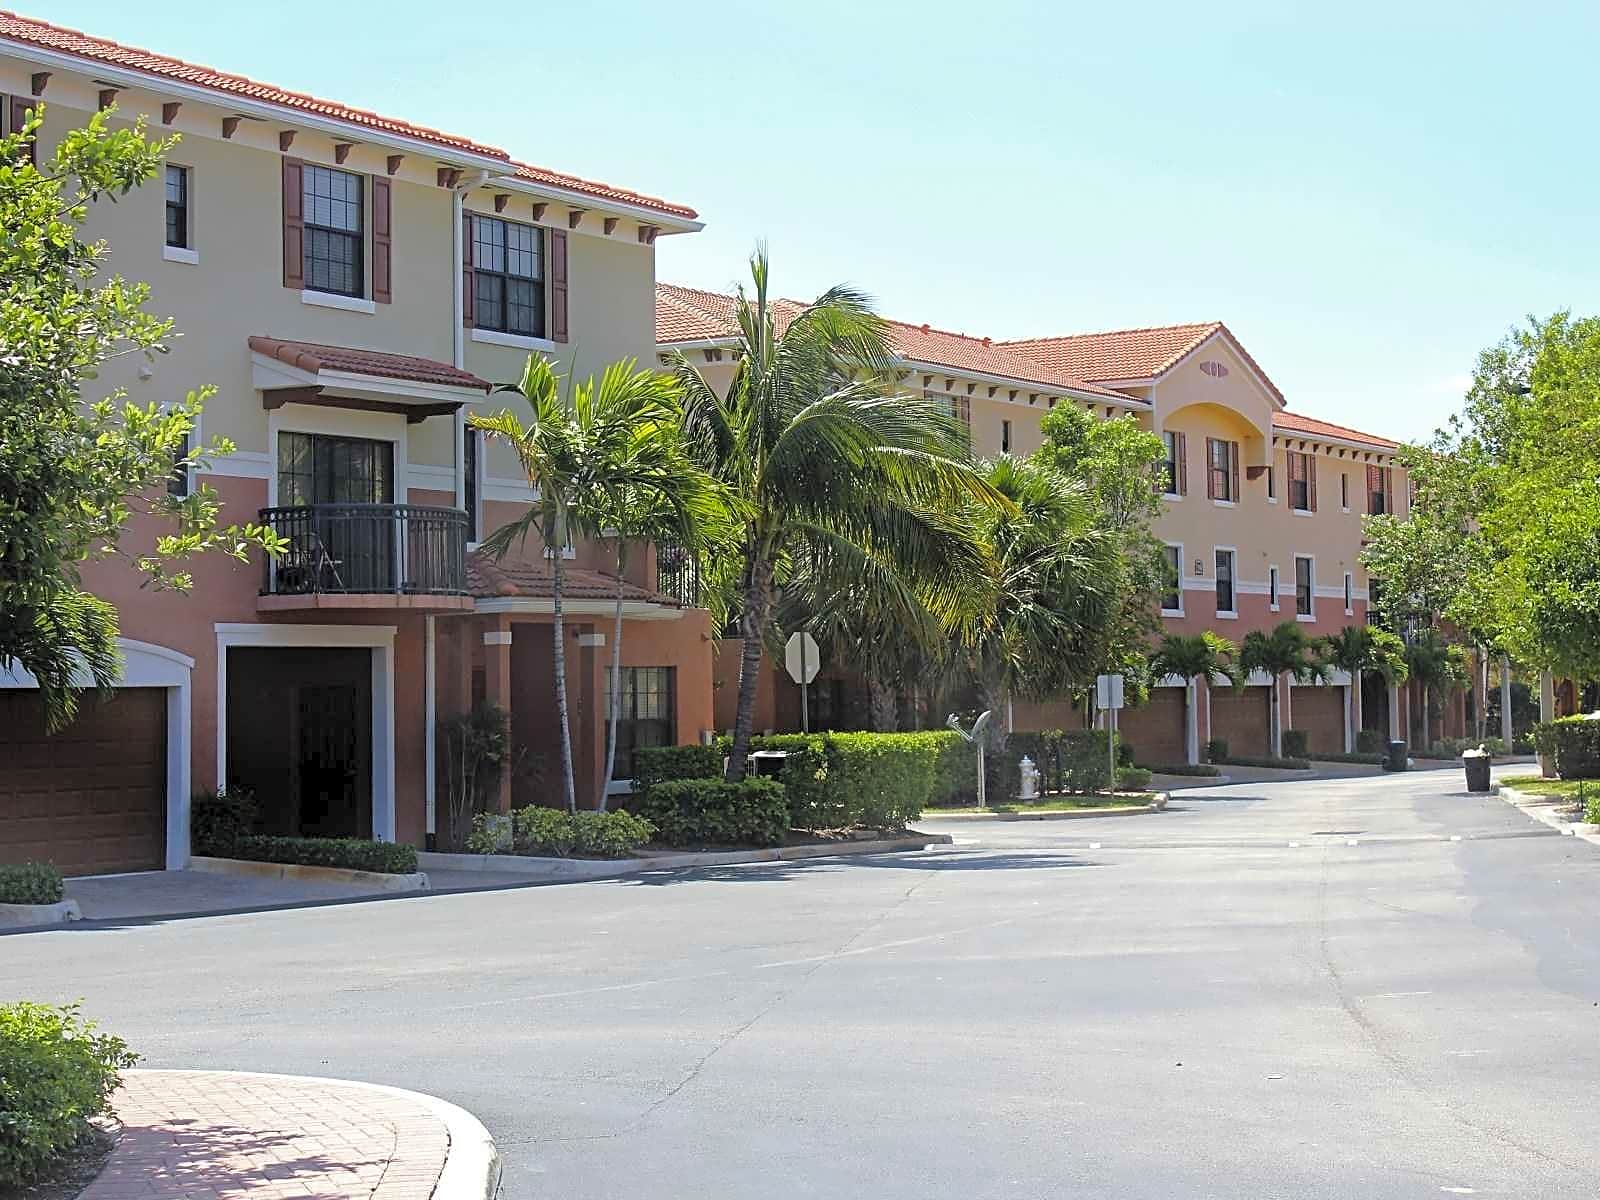 Photo: Boca Raton Apartment for Rent - $2570.00 / month; 4 Bd & 2 Ba